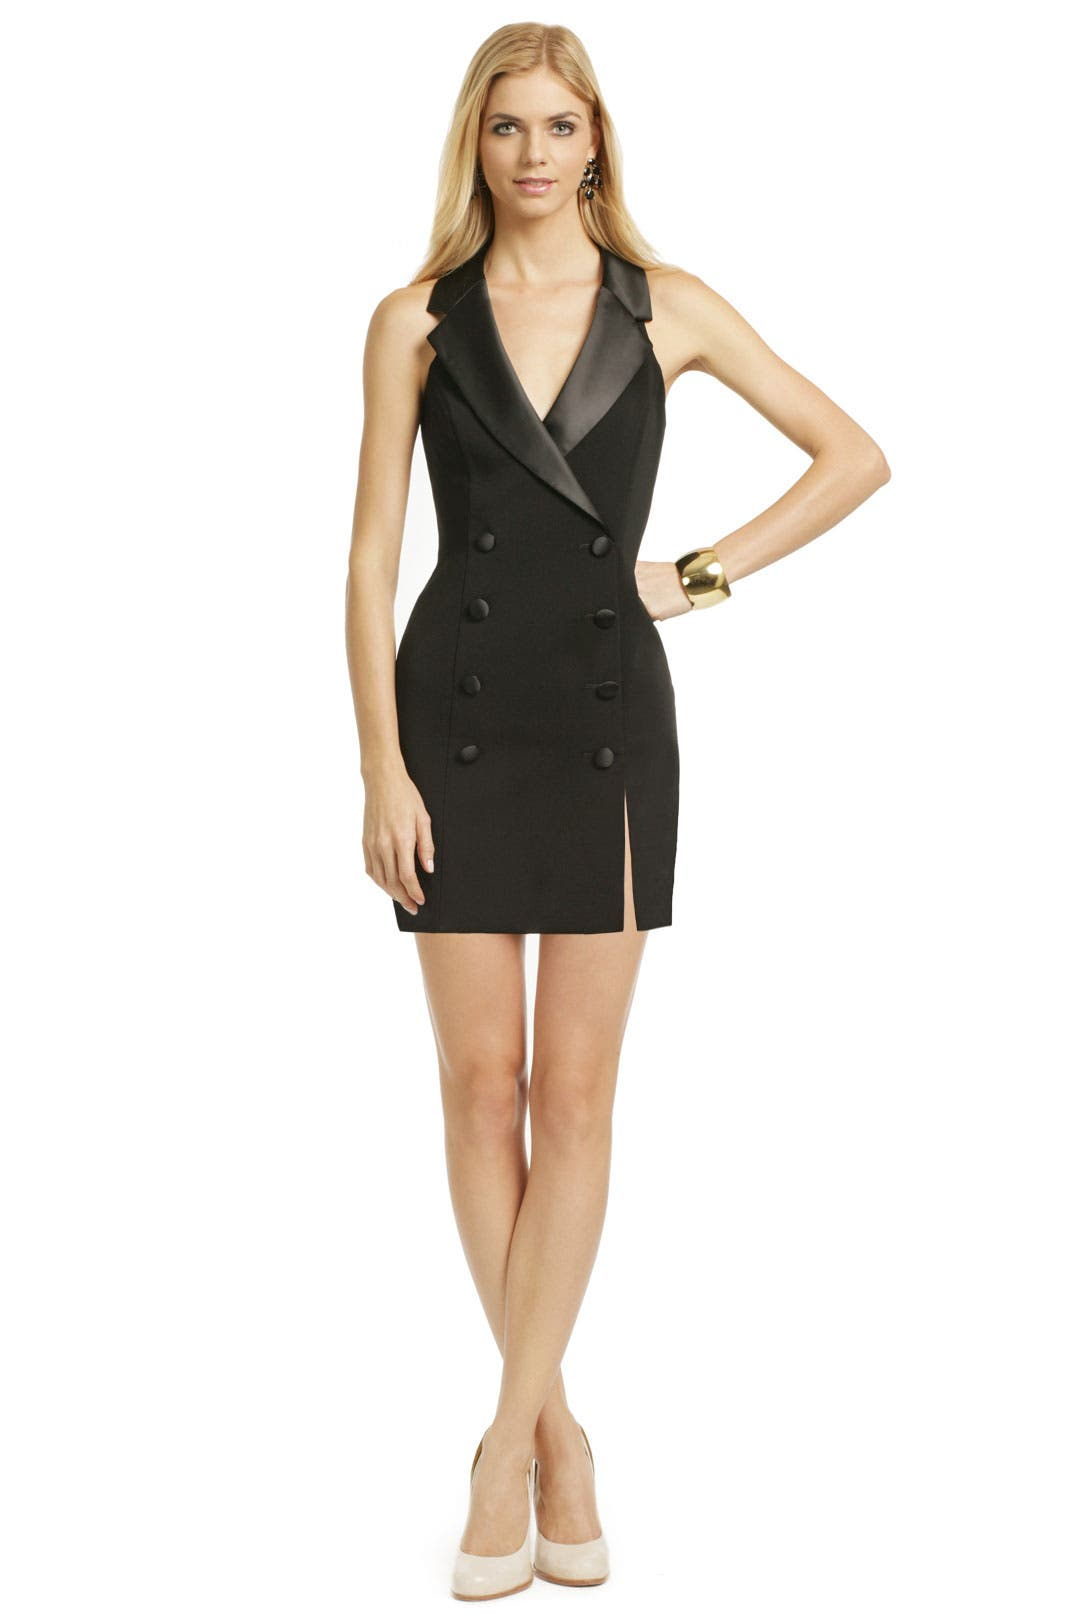 High Roller Dress by Mark & James by Badgley Mischka